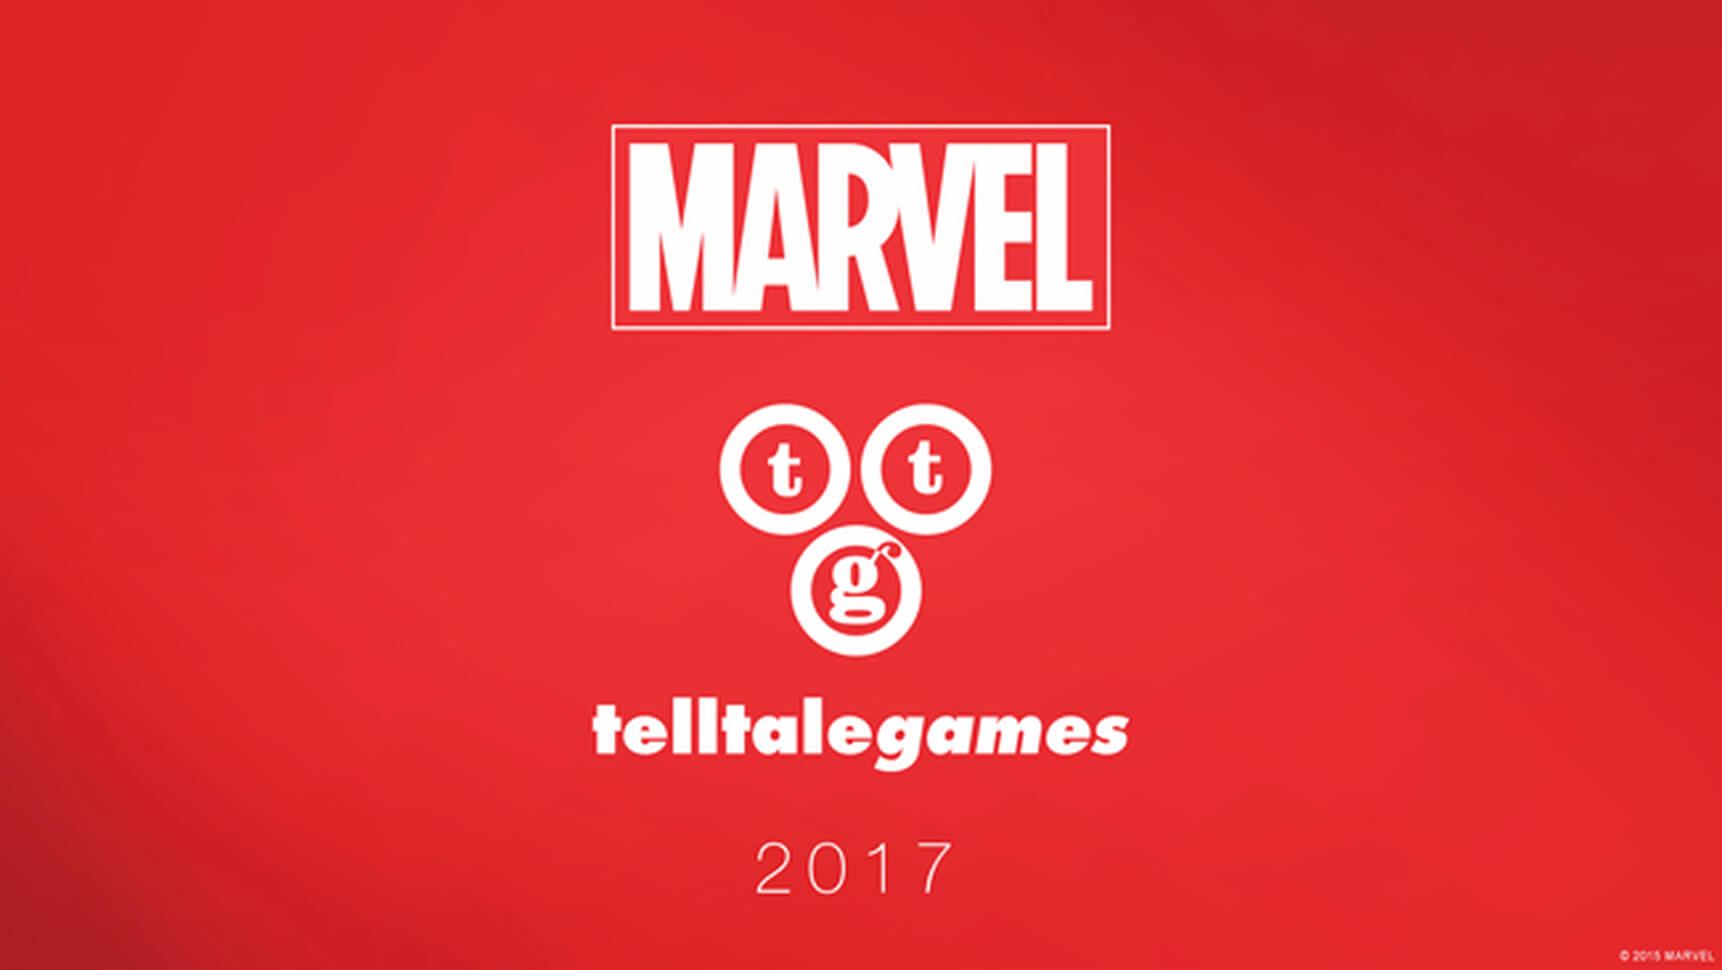 Marvel and Telltale Games Joining Forces for 2017